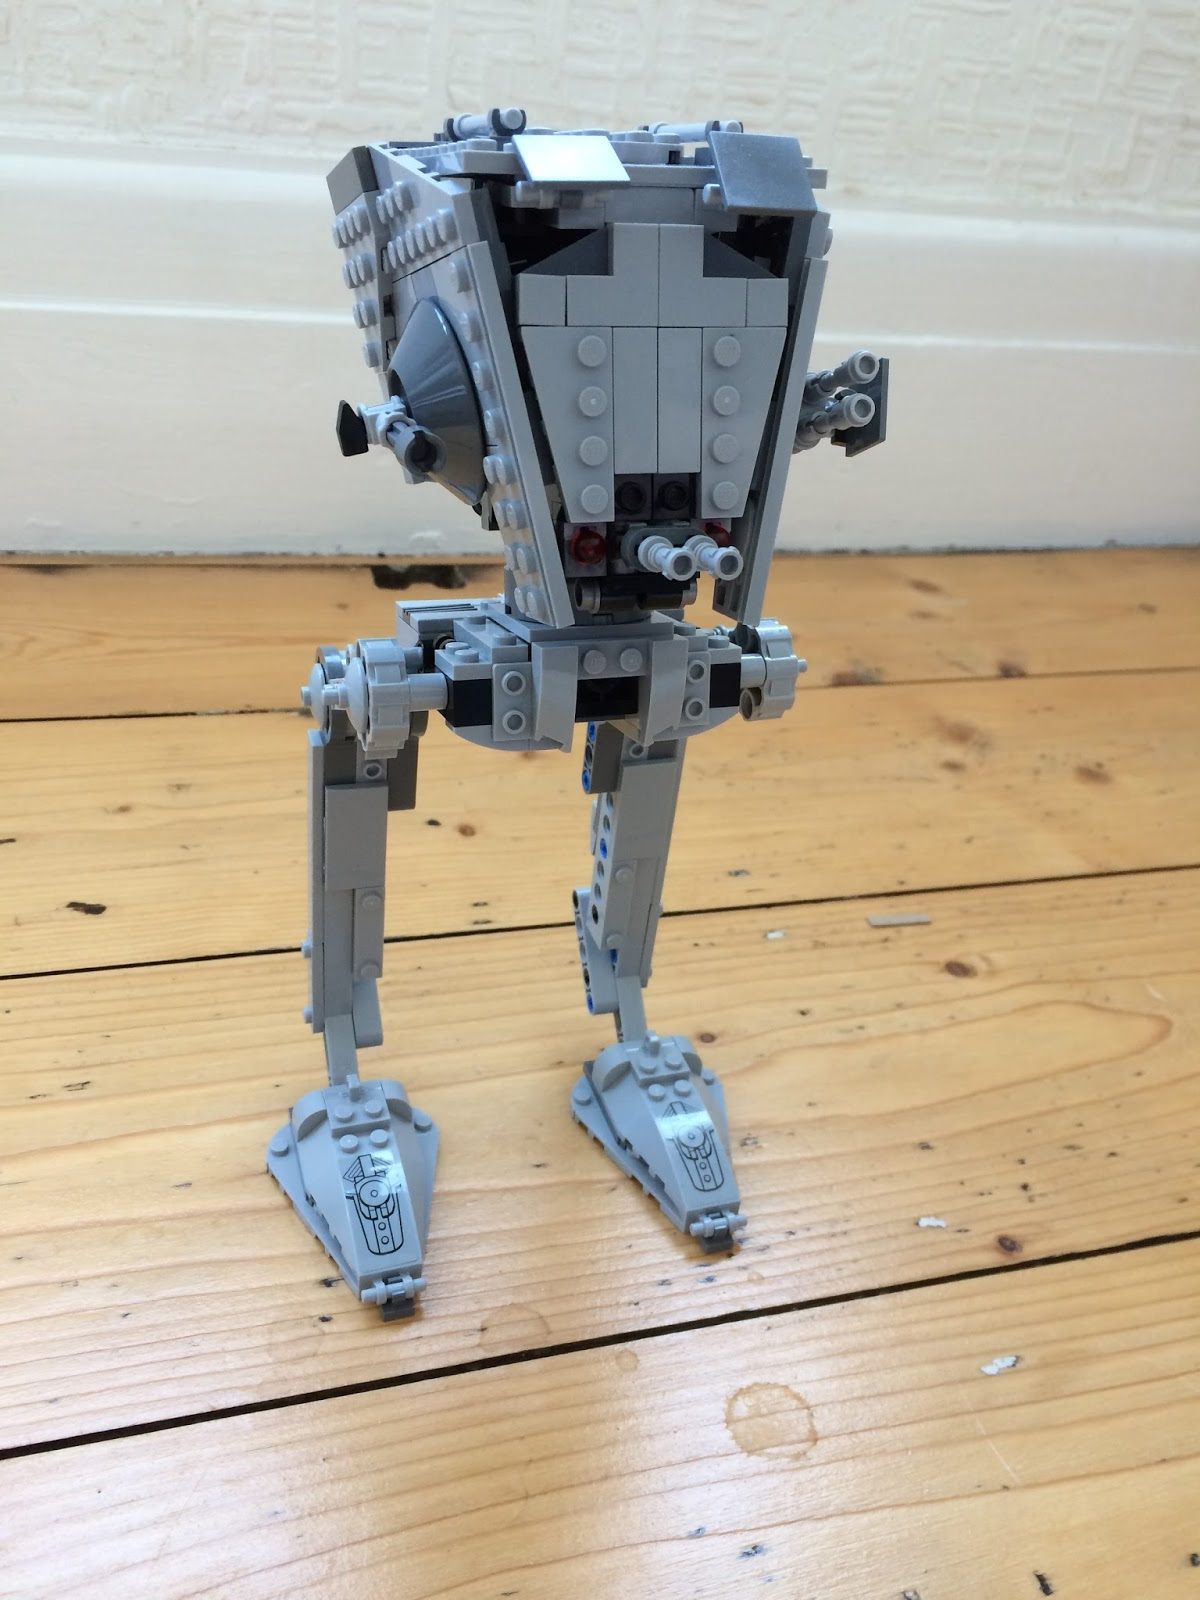 The Lego 75153 Star Wars AT-ST Walker assembled